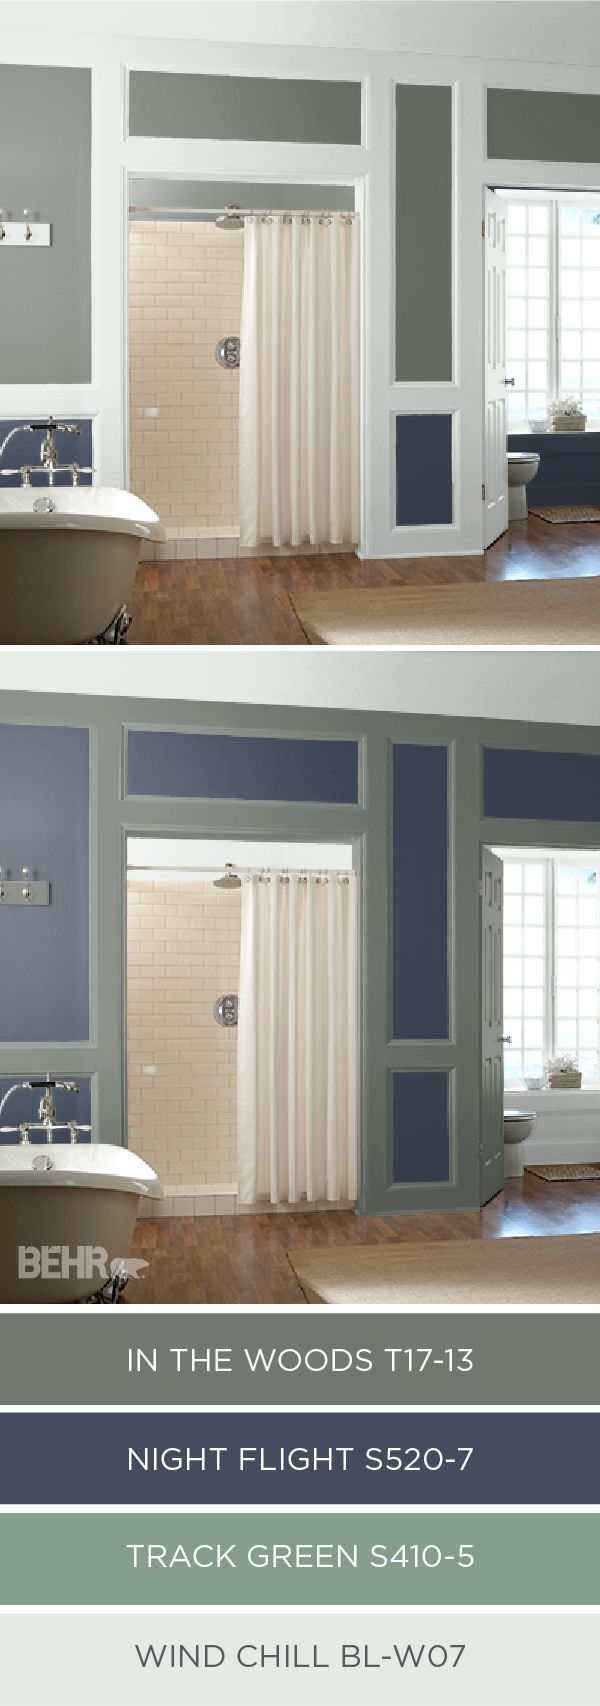 81 best images about behr 2017 color trends on pinterest on behr paint colors interior id=42502